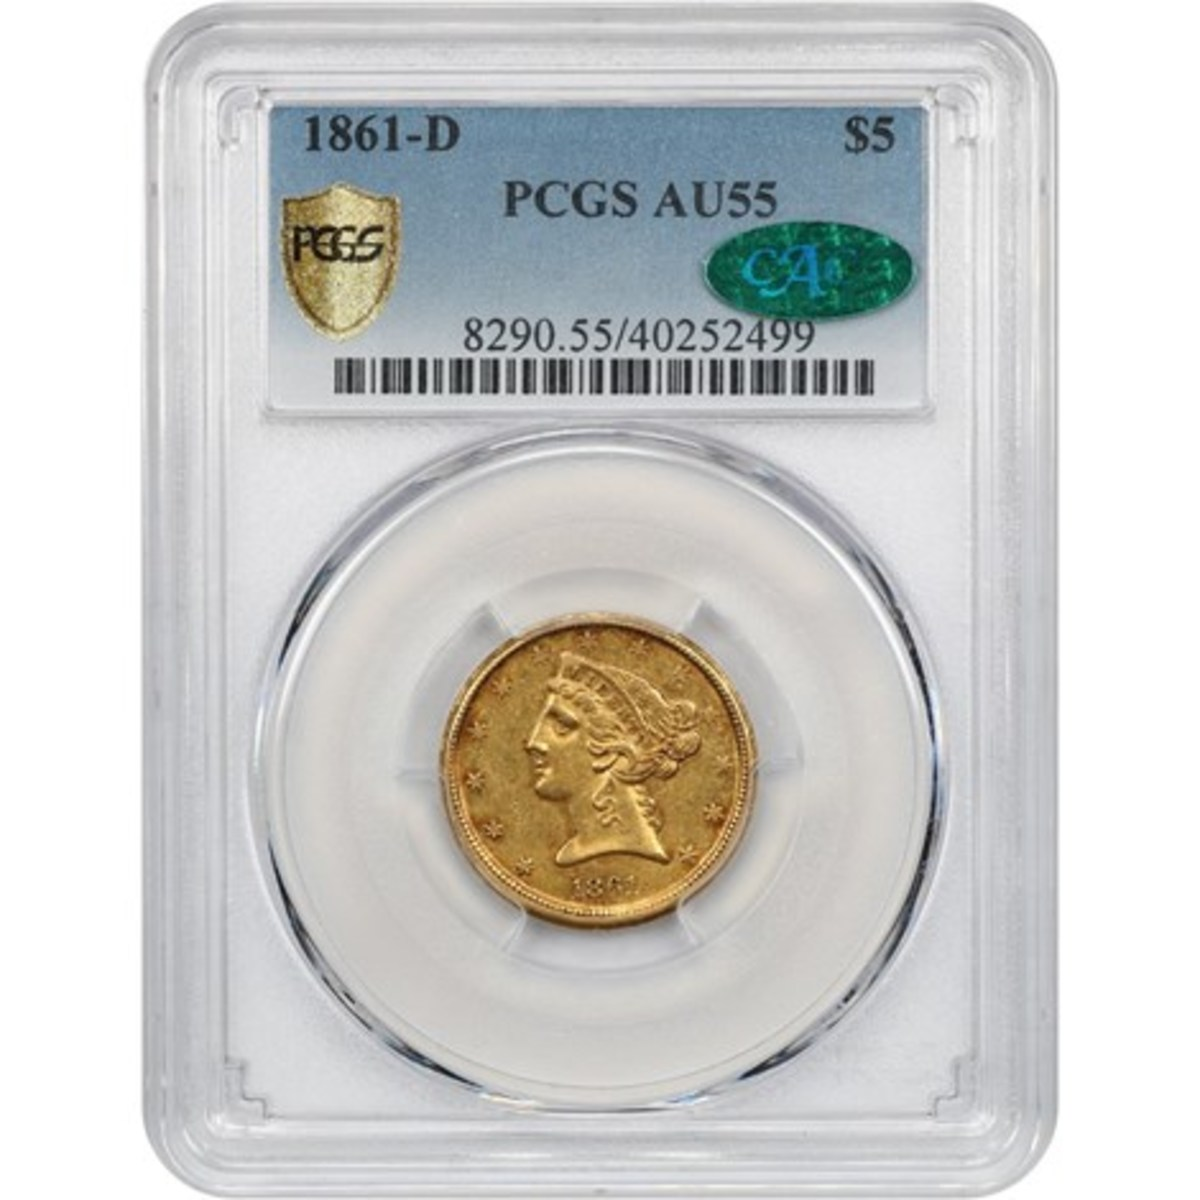 1861-D $5 gold graded AU-55 by PCGS with CAC sticker.